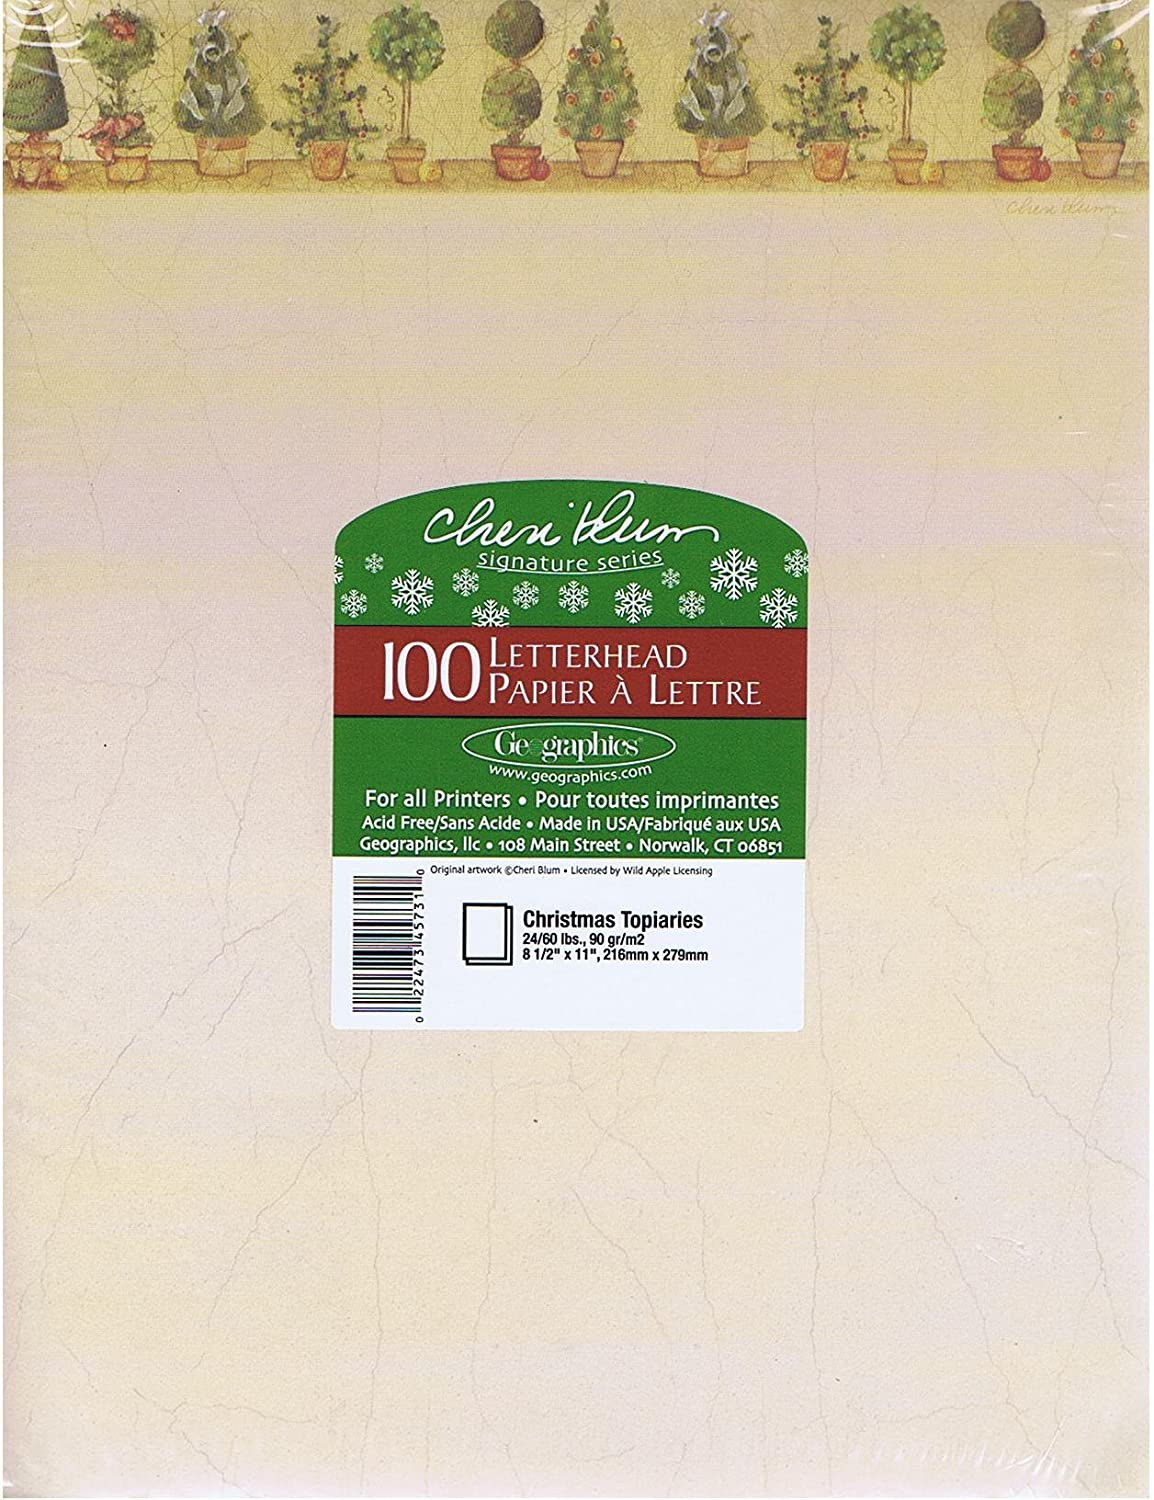 LETTERHEAD PAPER 100 CT BY GEOGRAPHICS MAIN STREET ....